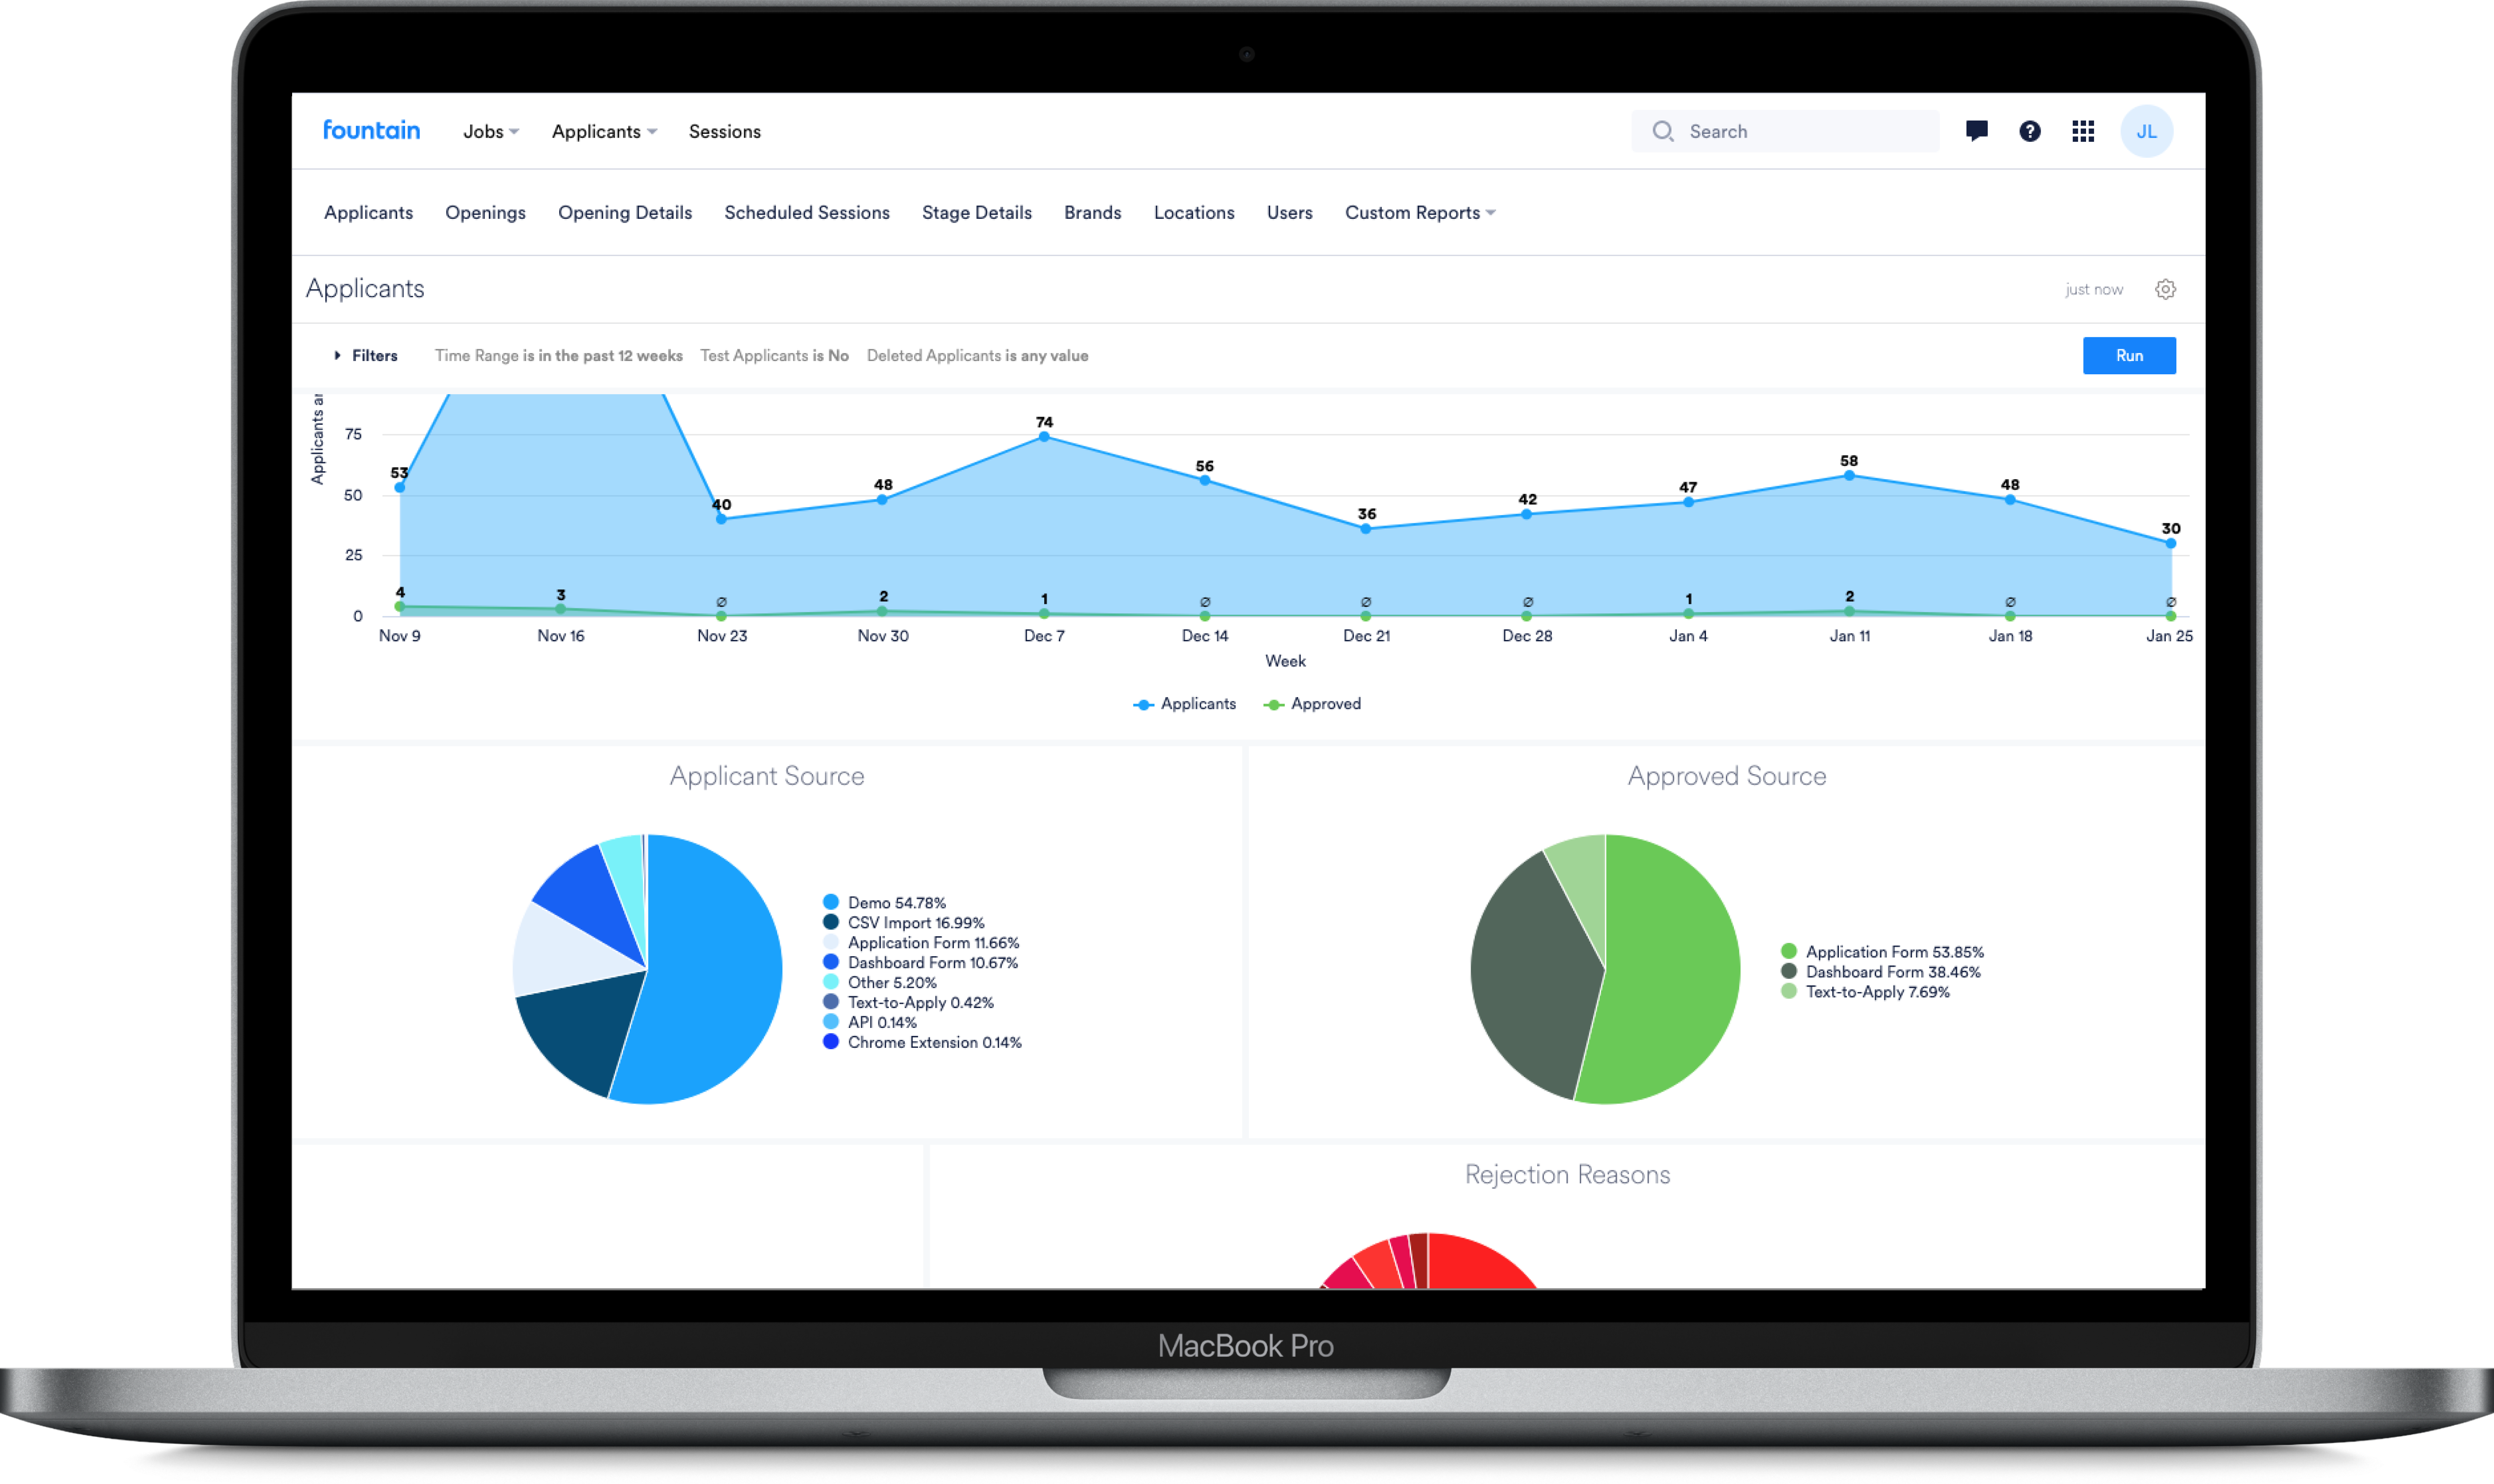 Fountain ATS comes with built-in analytics with customizable filters and drill down capabilities.